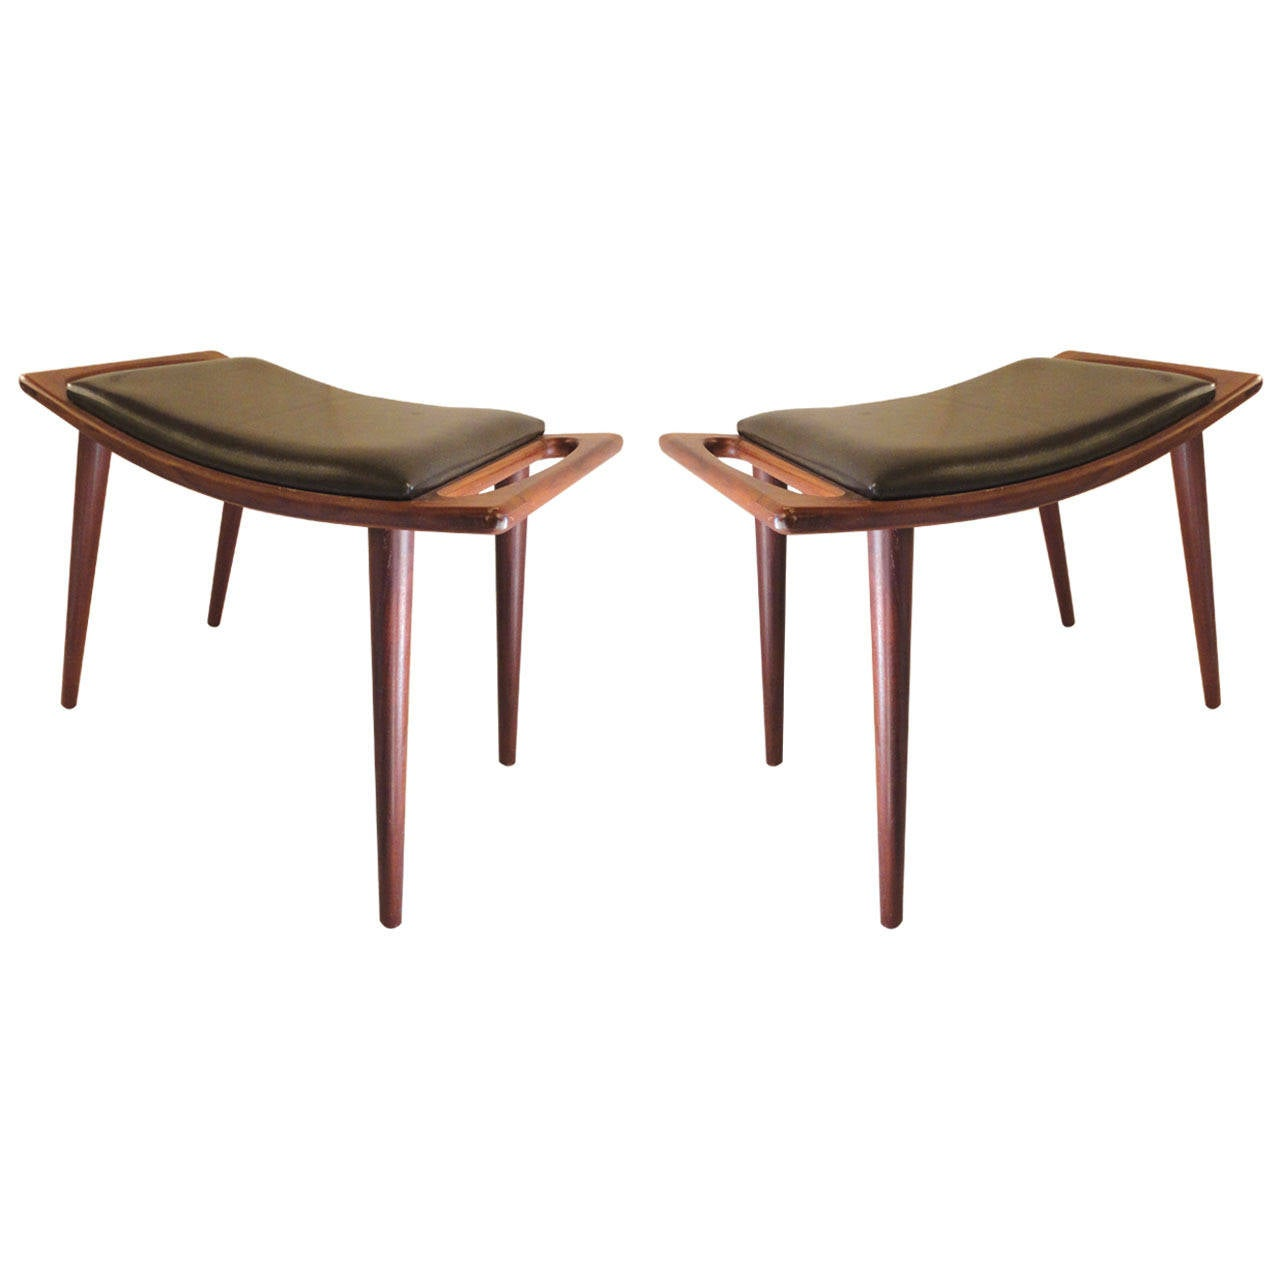 hans wegner mid century modern stool at 1stdibs. Black Bedroom Furniture Sets. Home Design Ideas